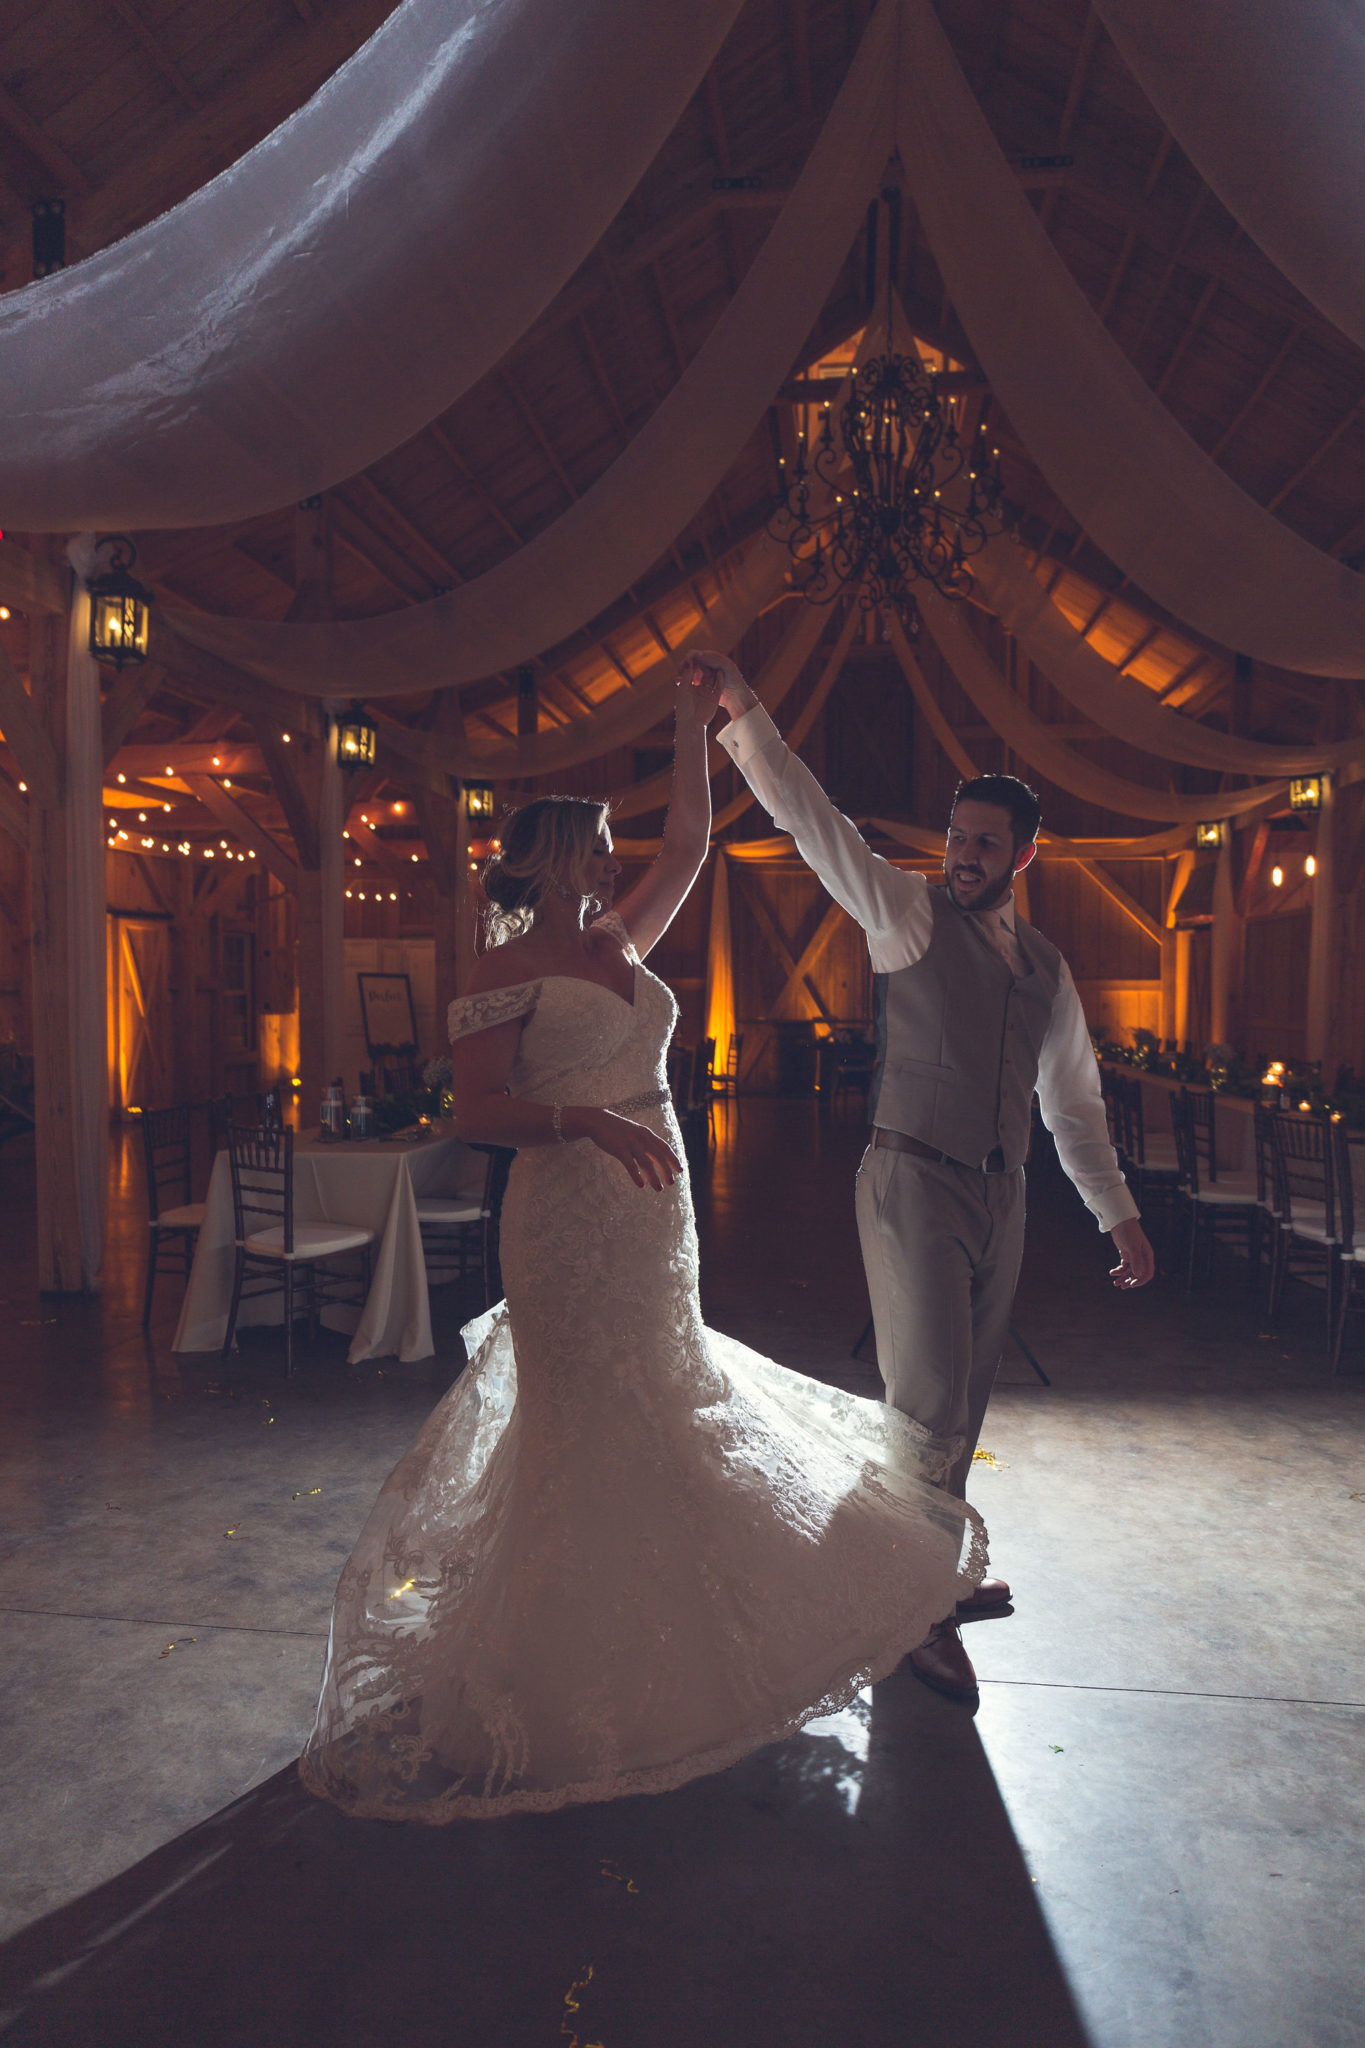 One last spin on the dance floor for the bride and groom's last dance.